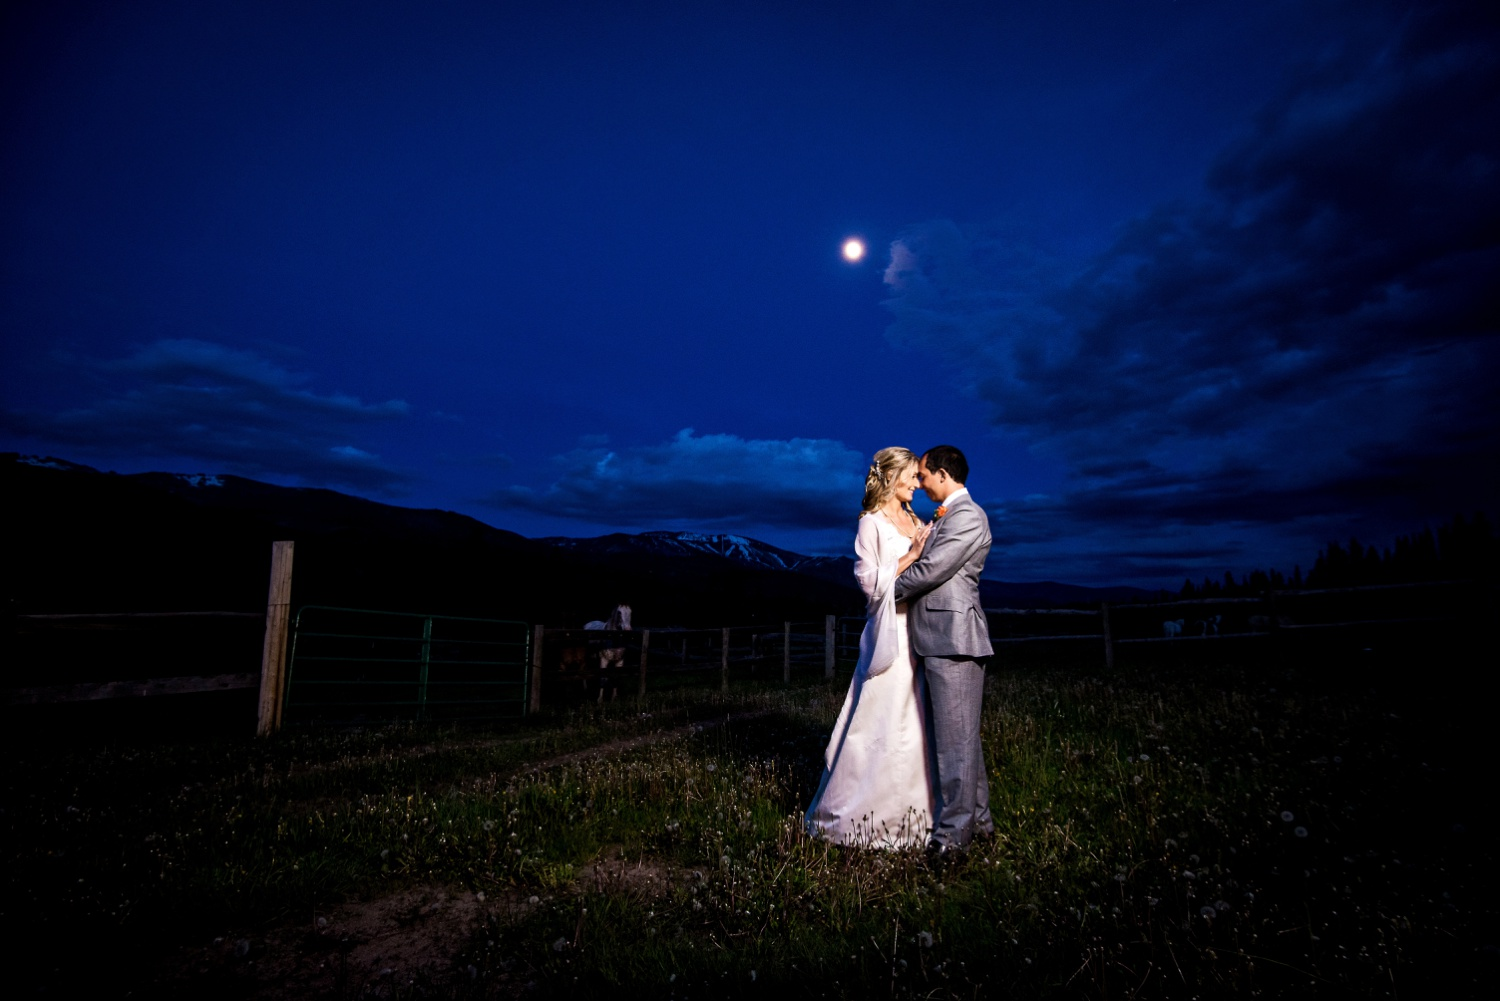 Night portrait of bride and groom at Ranch wedding at Perry-Mansfield in Steamboat Springs, Colorado.